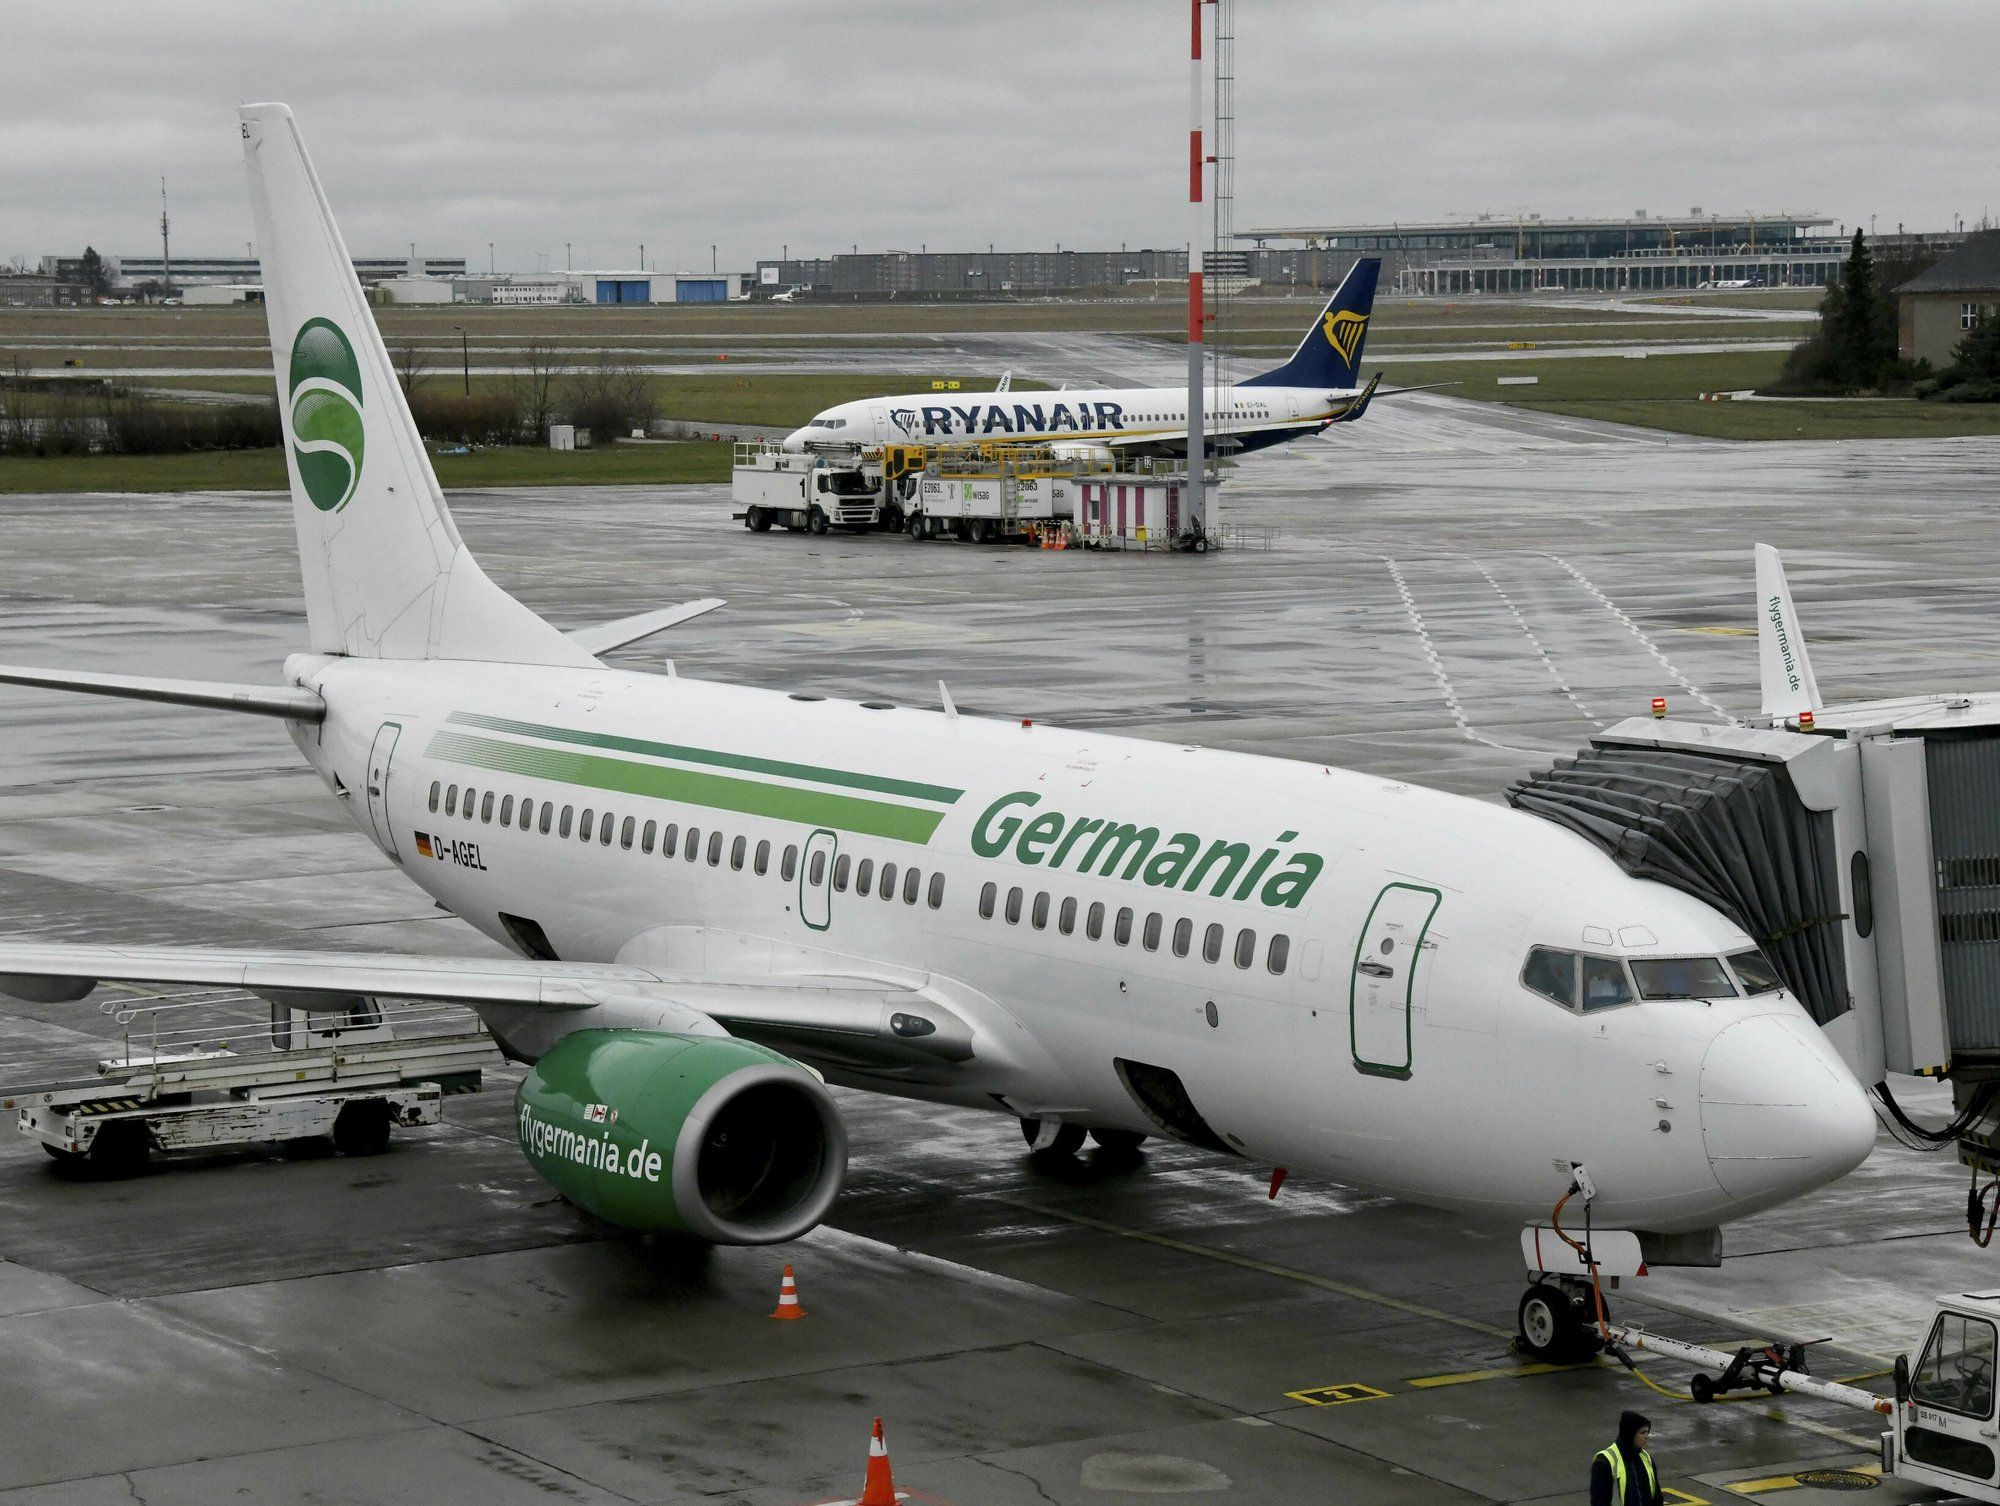 German airline Germania files for insolvency, grounds planes